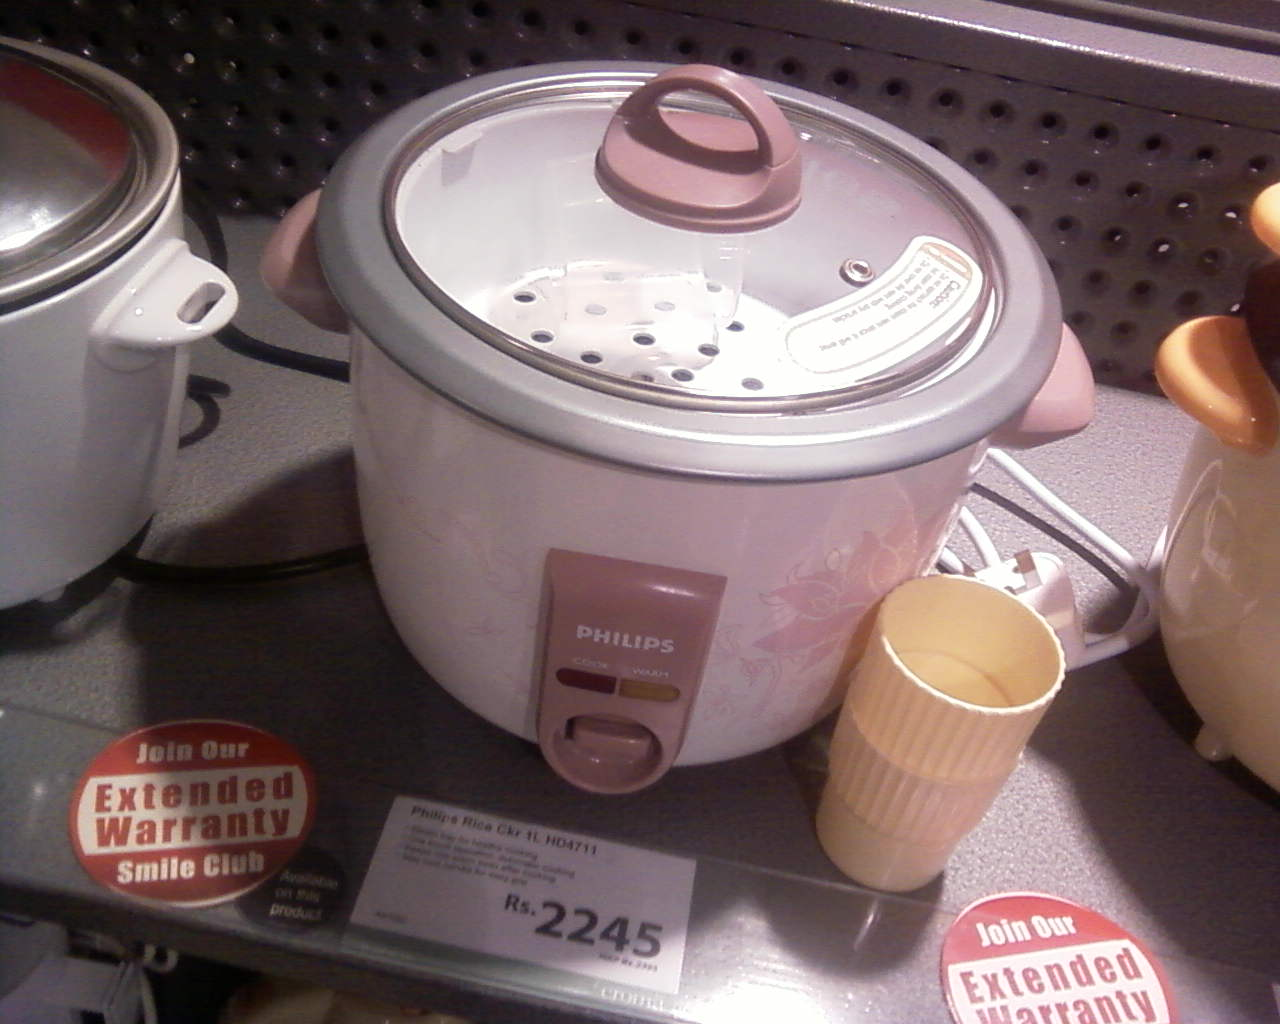 Electric rice cooker made by Philips in an Indian appliance showroom